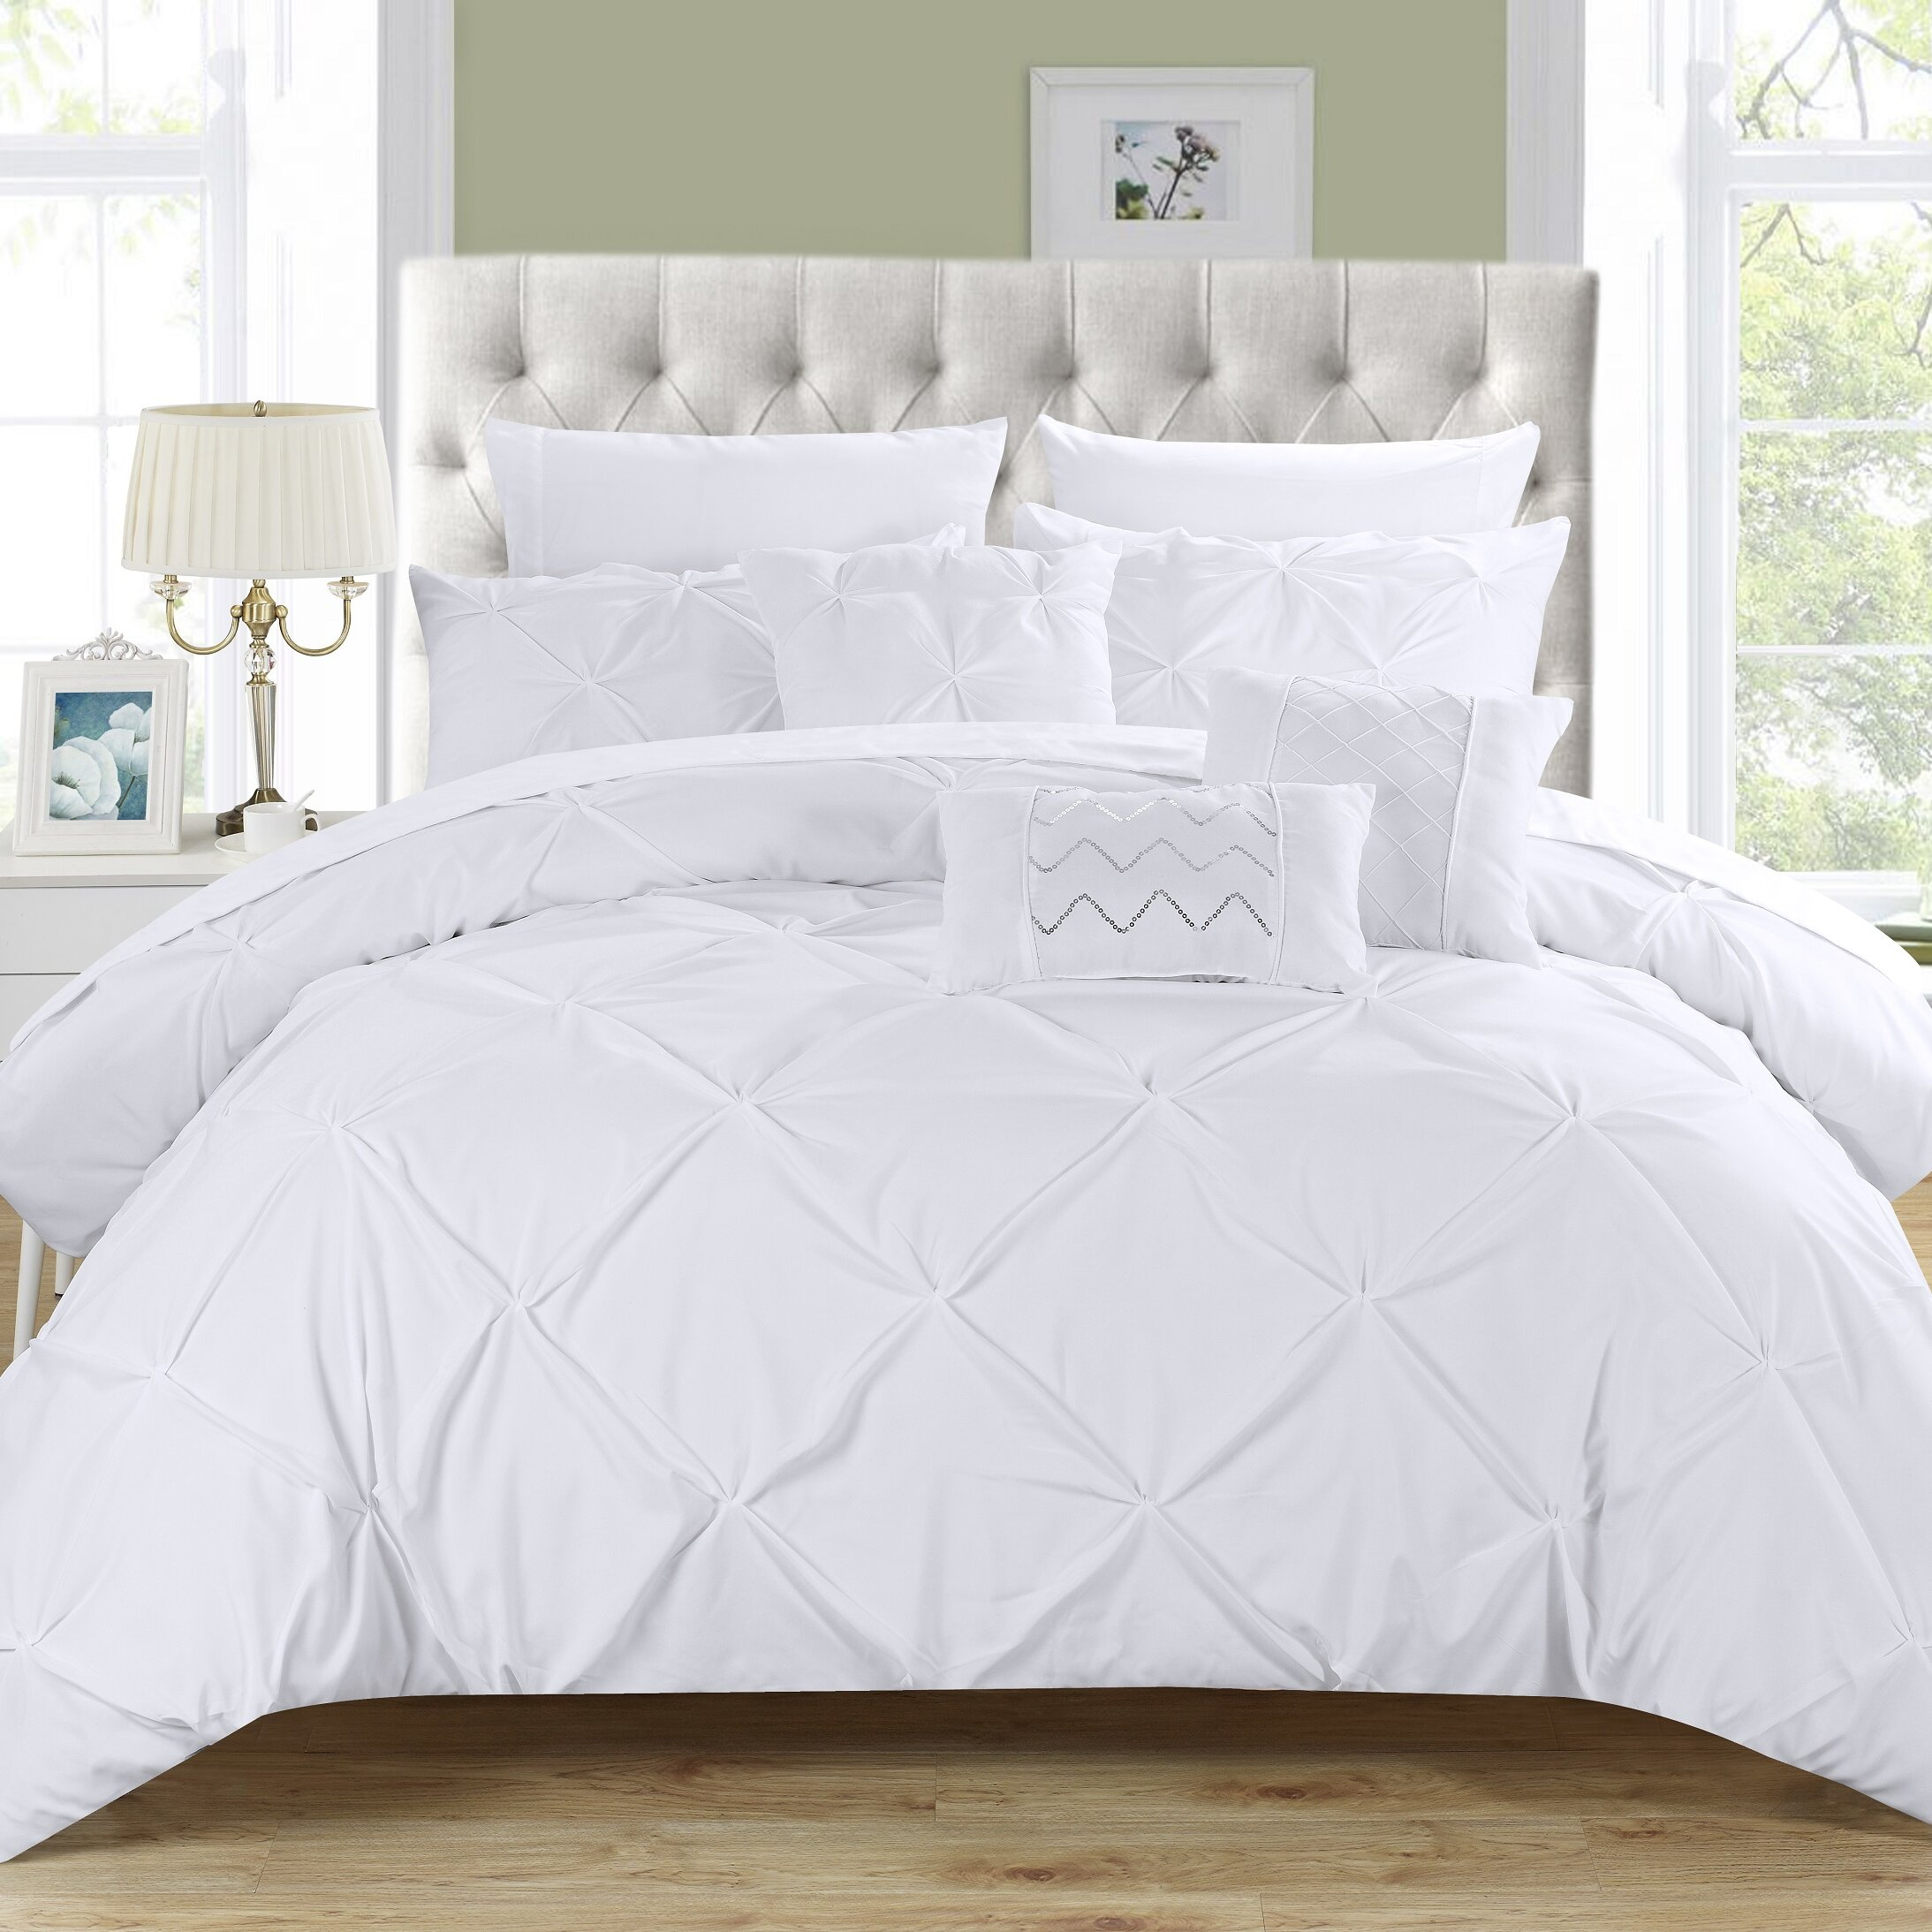 Elegant Willa Arlo Interiors Yamna 10 Piece Comforter Set U0026 Reviews | Wayfair